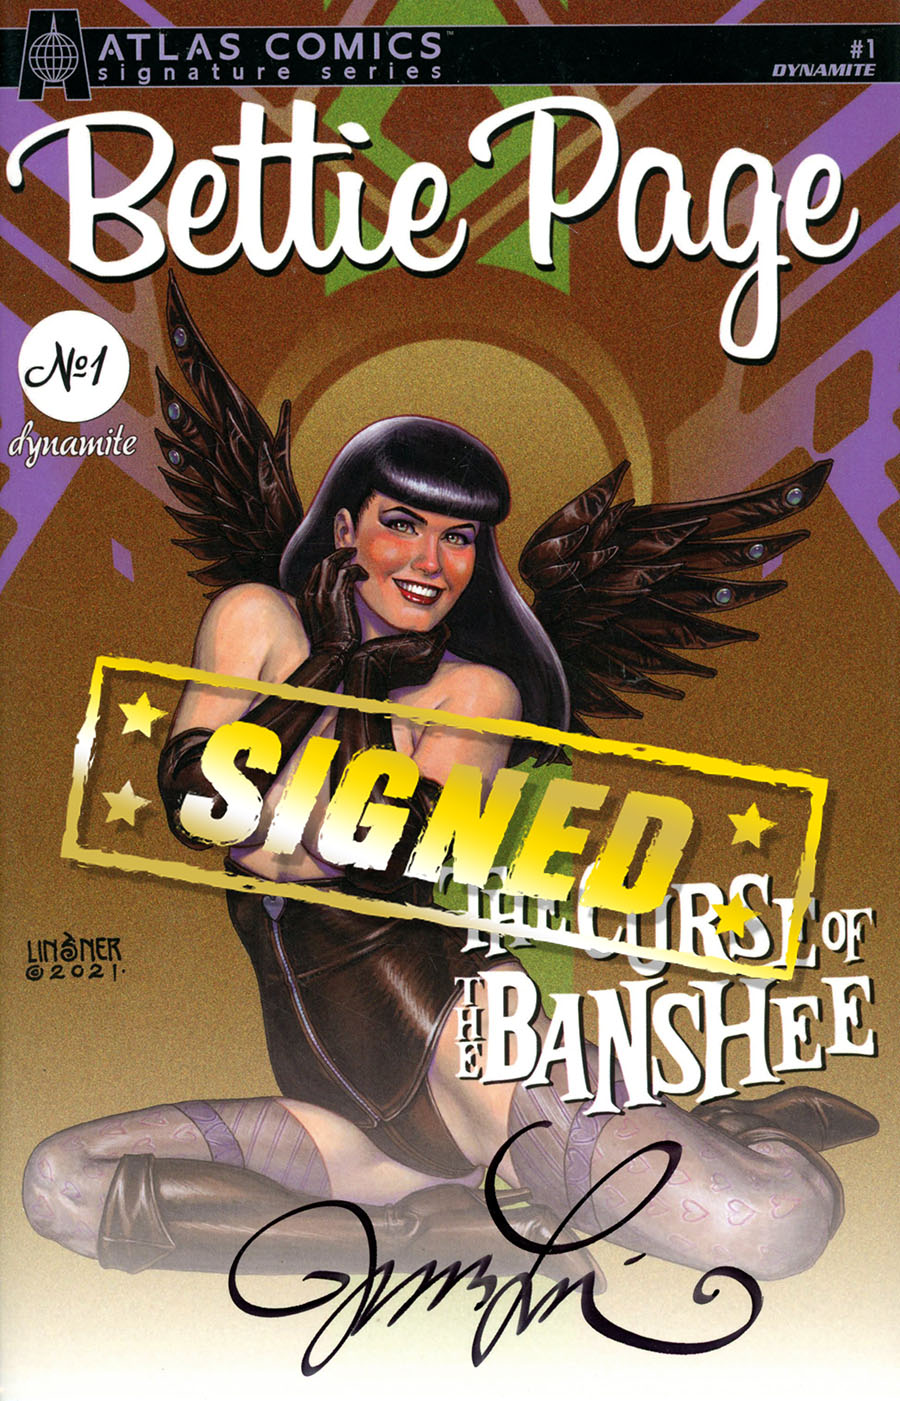 Bettie Page And The Curse Of The Banshee #1 Cover W Atlas Comics Signature Series Signed By Joseph Michael Linsner